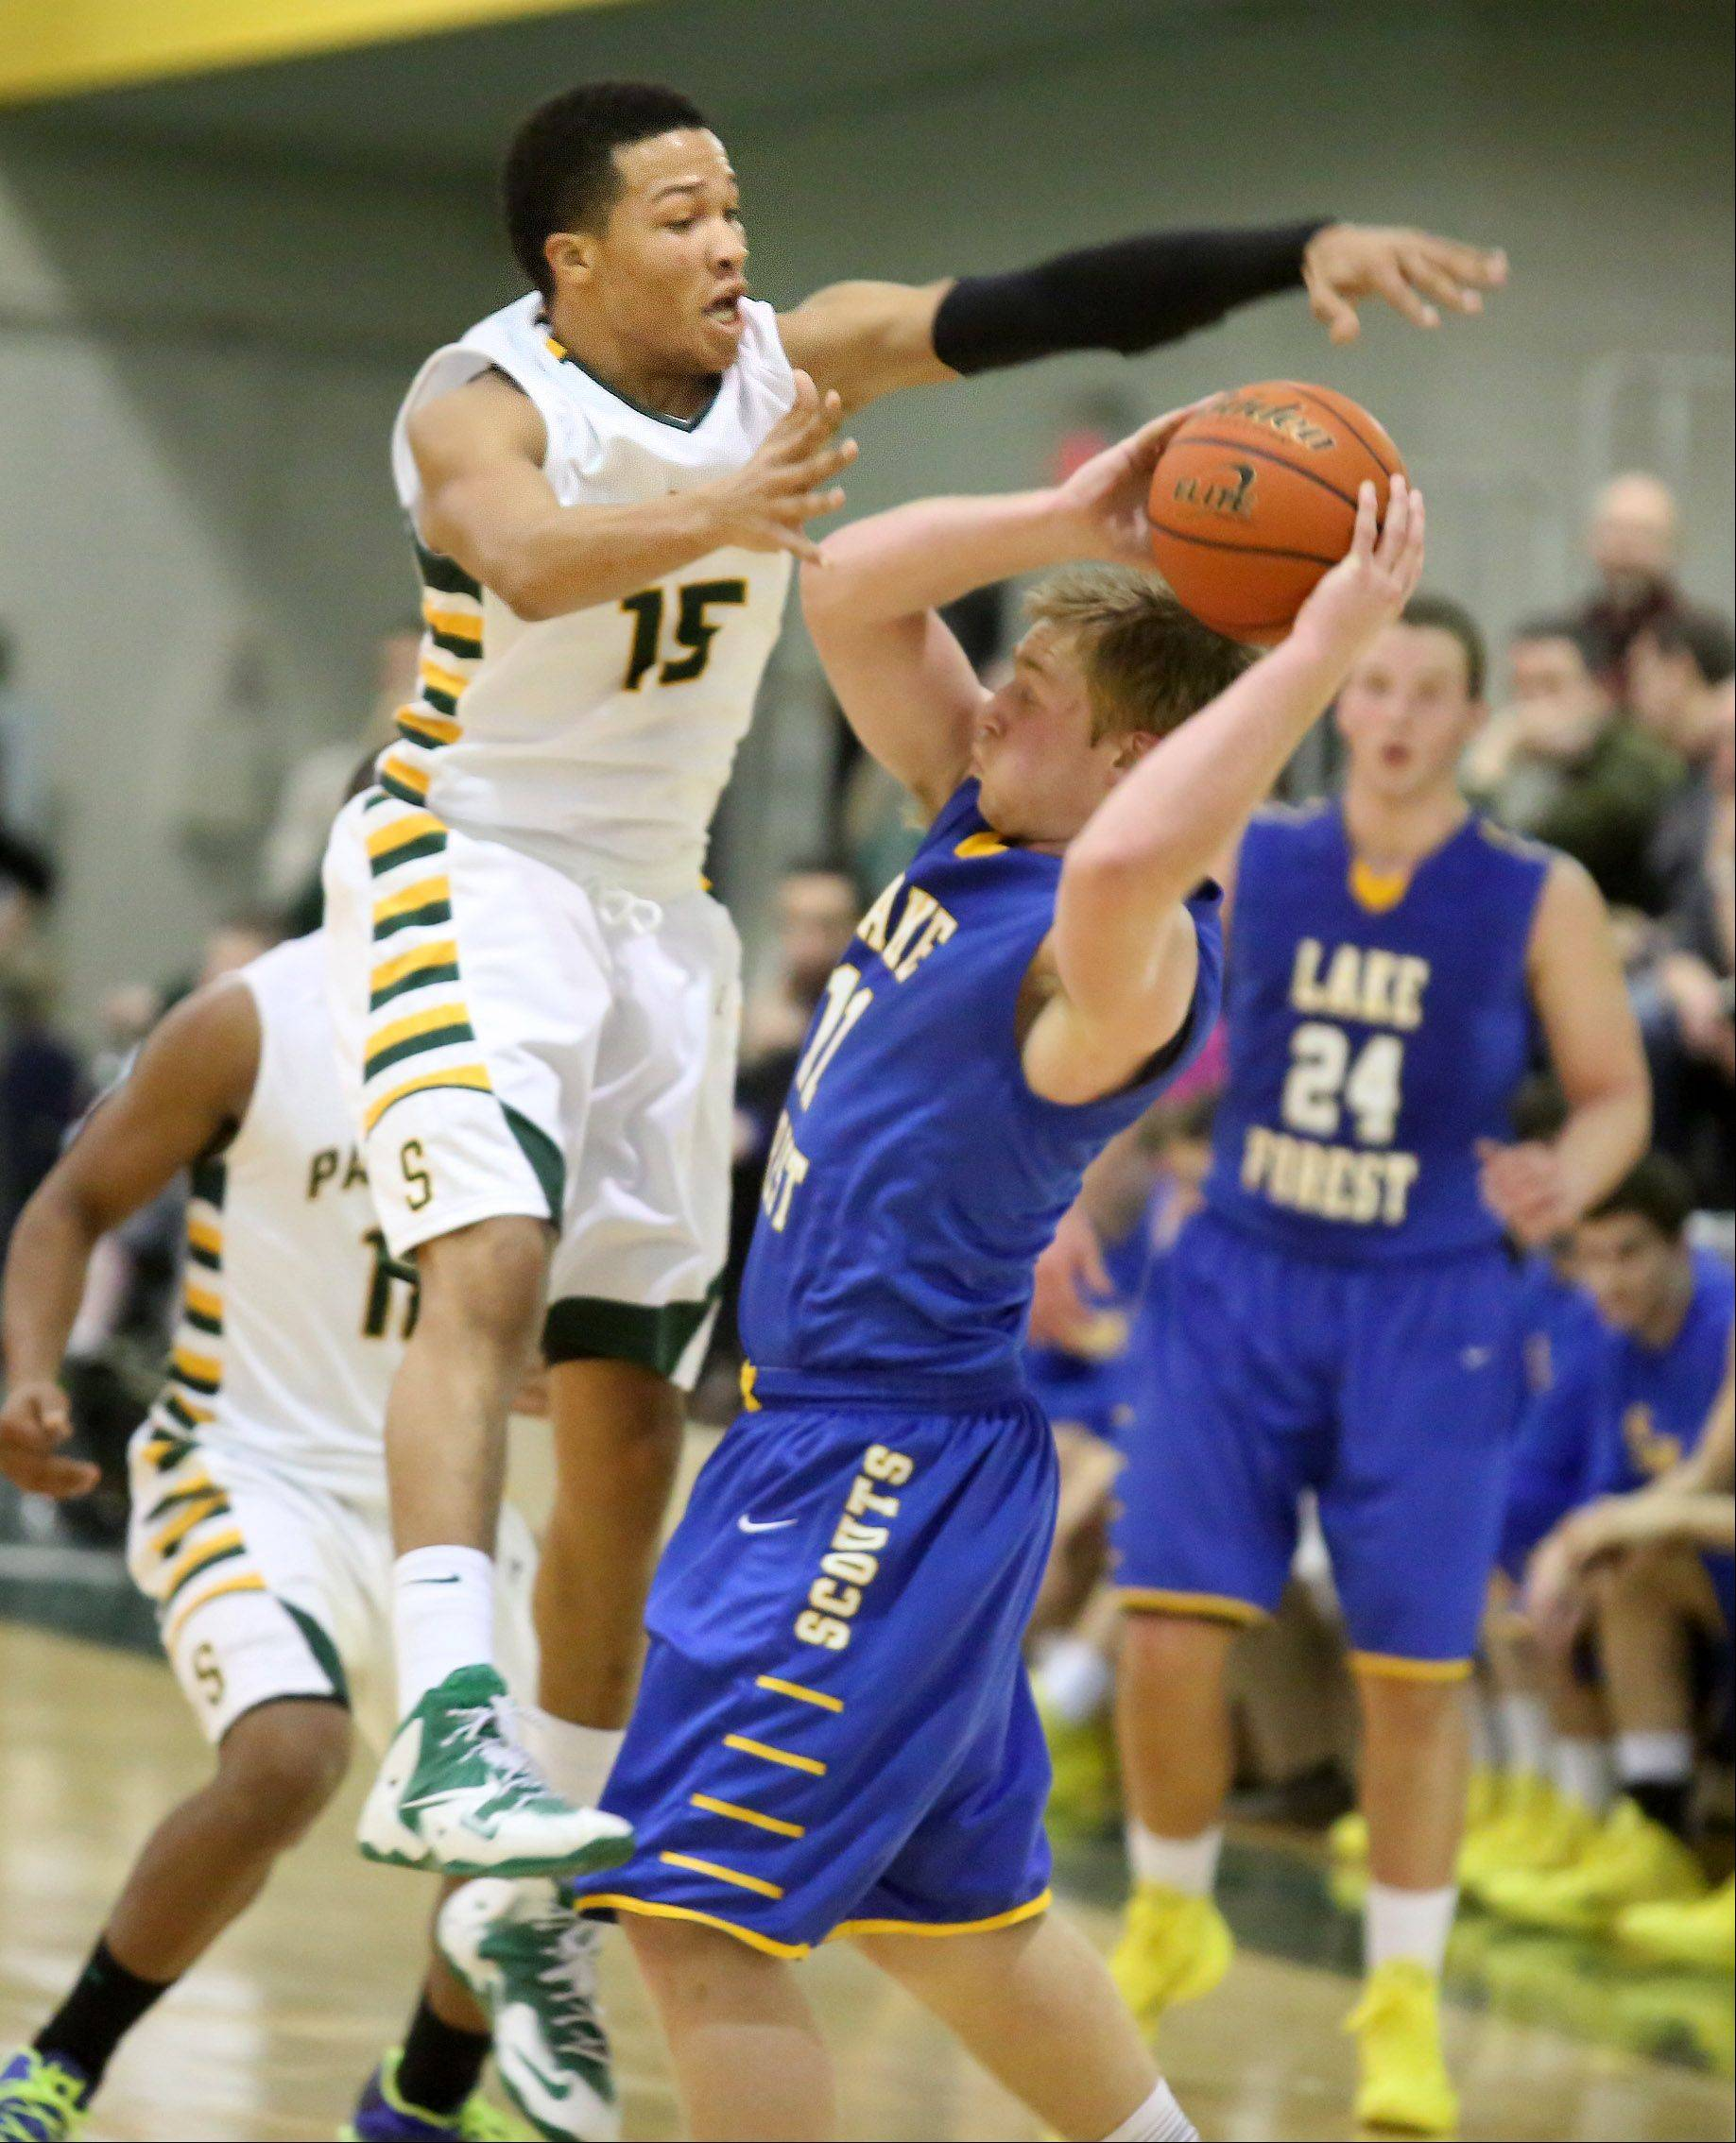 Stevenson guard Jalen Brunson leaps to stop Lake Forest guard Jack Traynor from passing the ball at Stevenson on Friday in Lincolnshire.